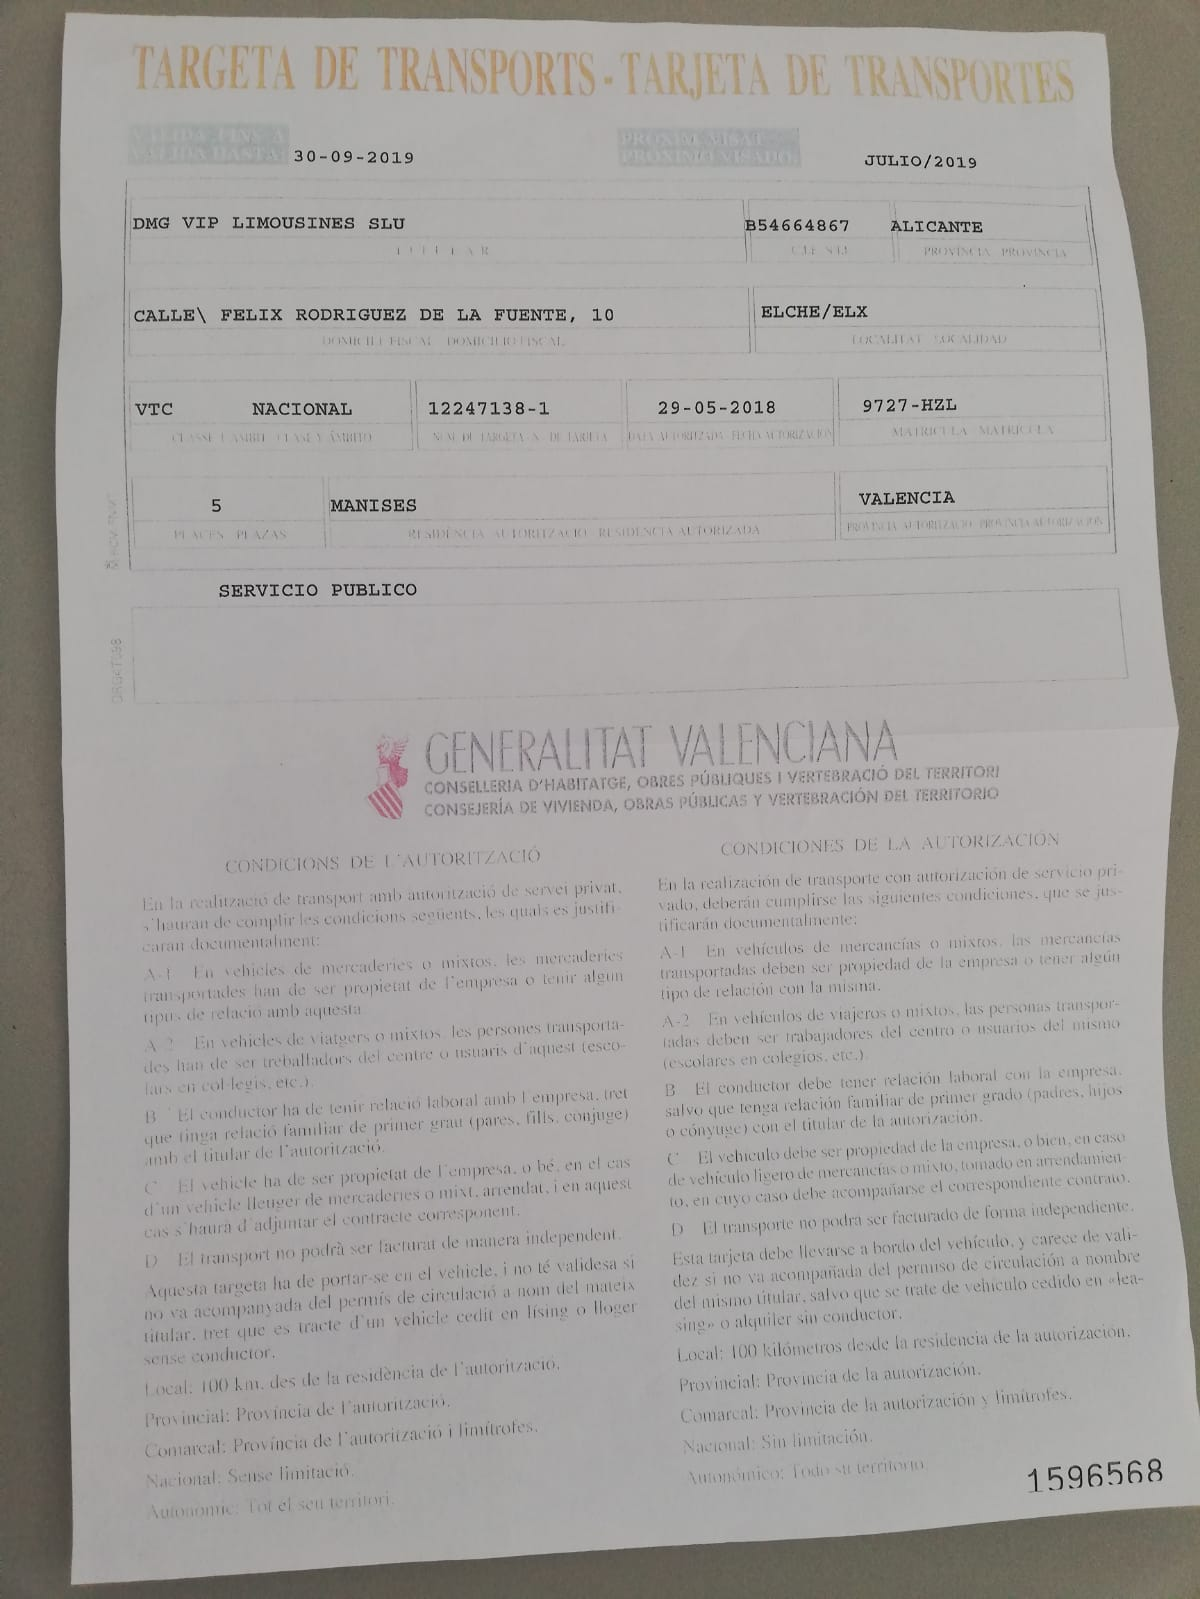 DMG VIP LIMOUSINES transport licence